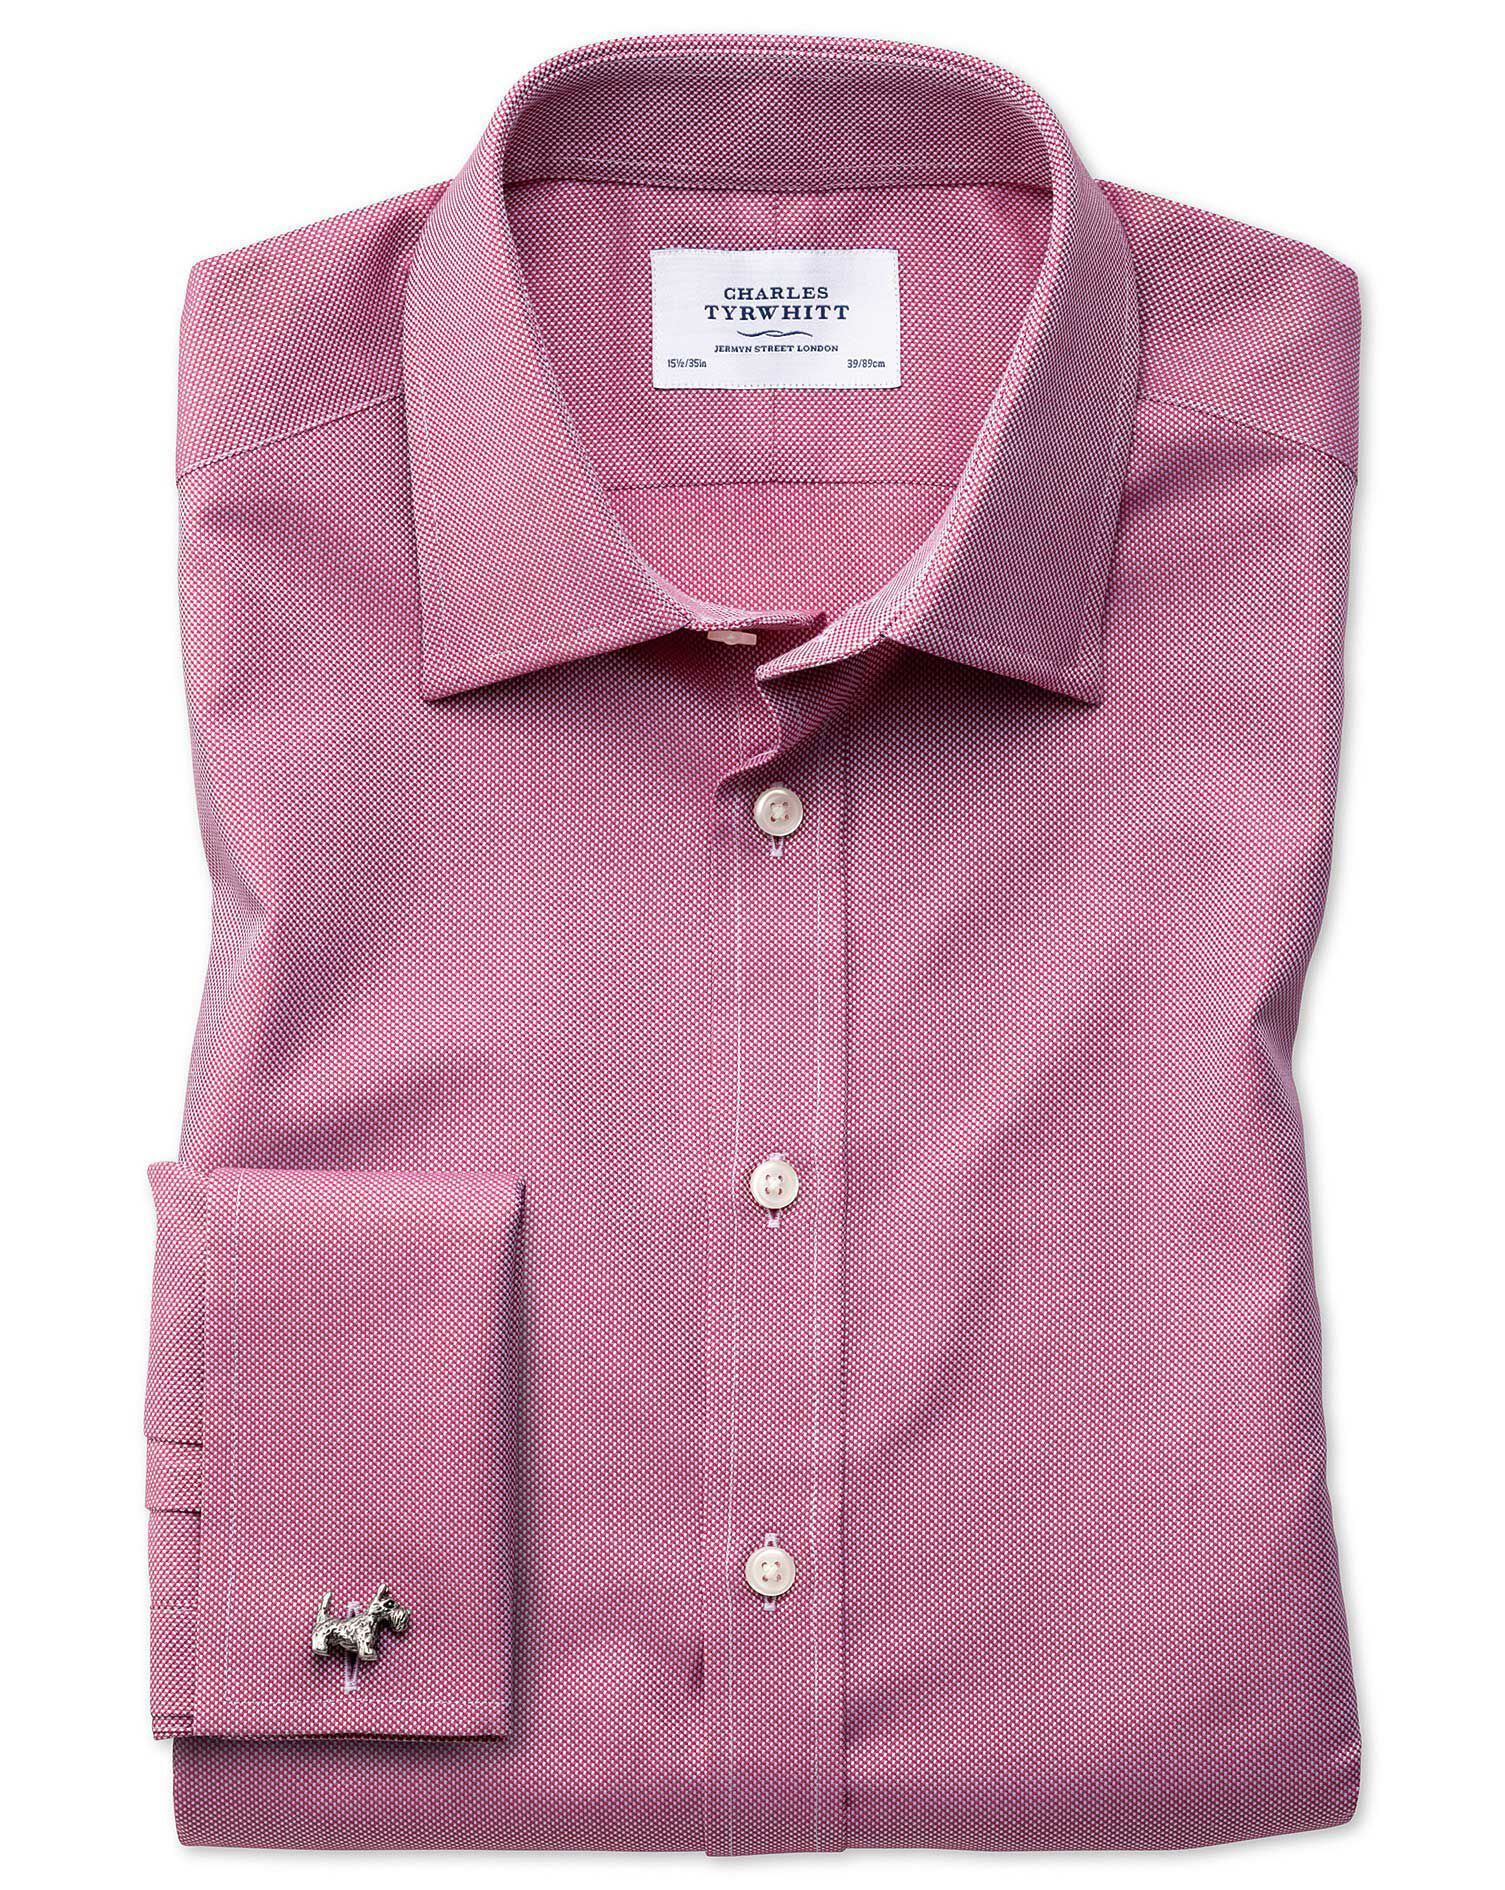 Classic Fit Egyptian Cotton Royal Oxford Magenta Formal Shirt Single Cuff Size 16/36 by Charles Tyrw